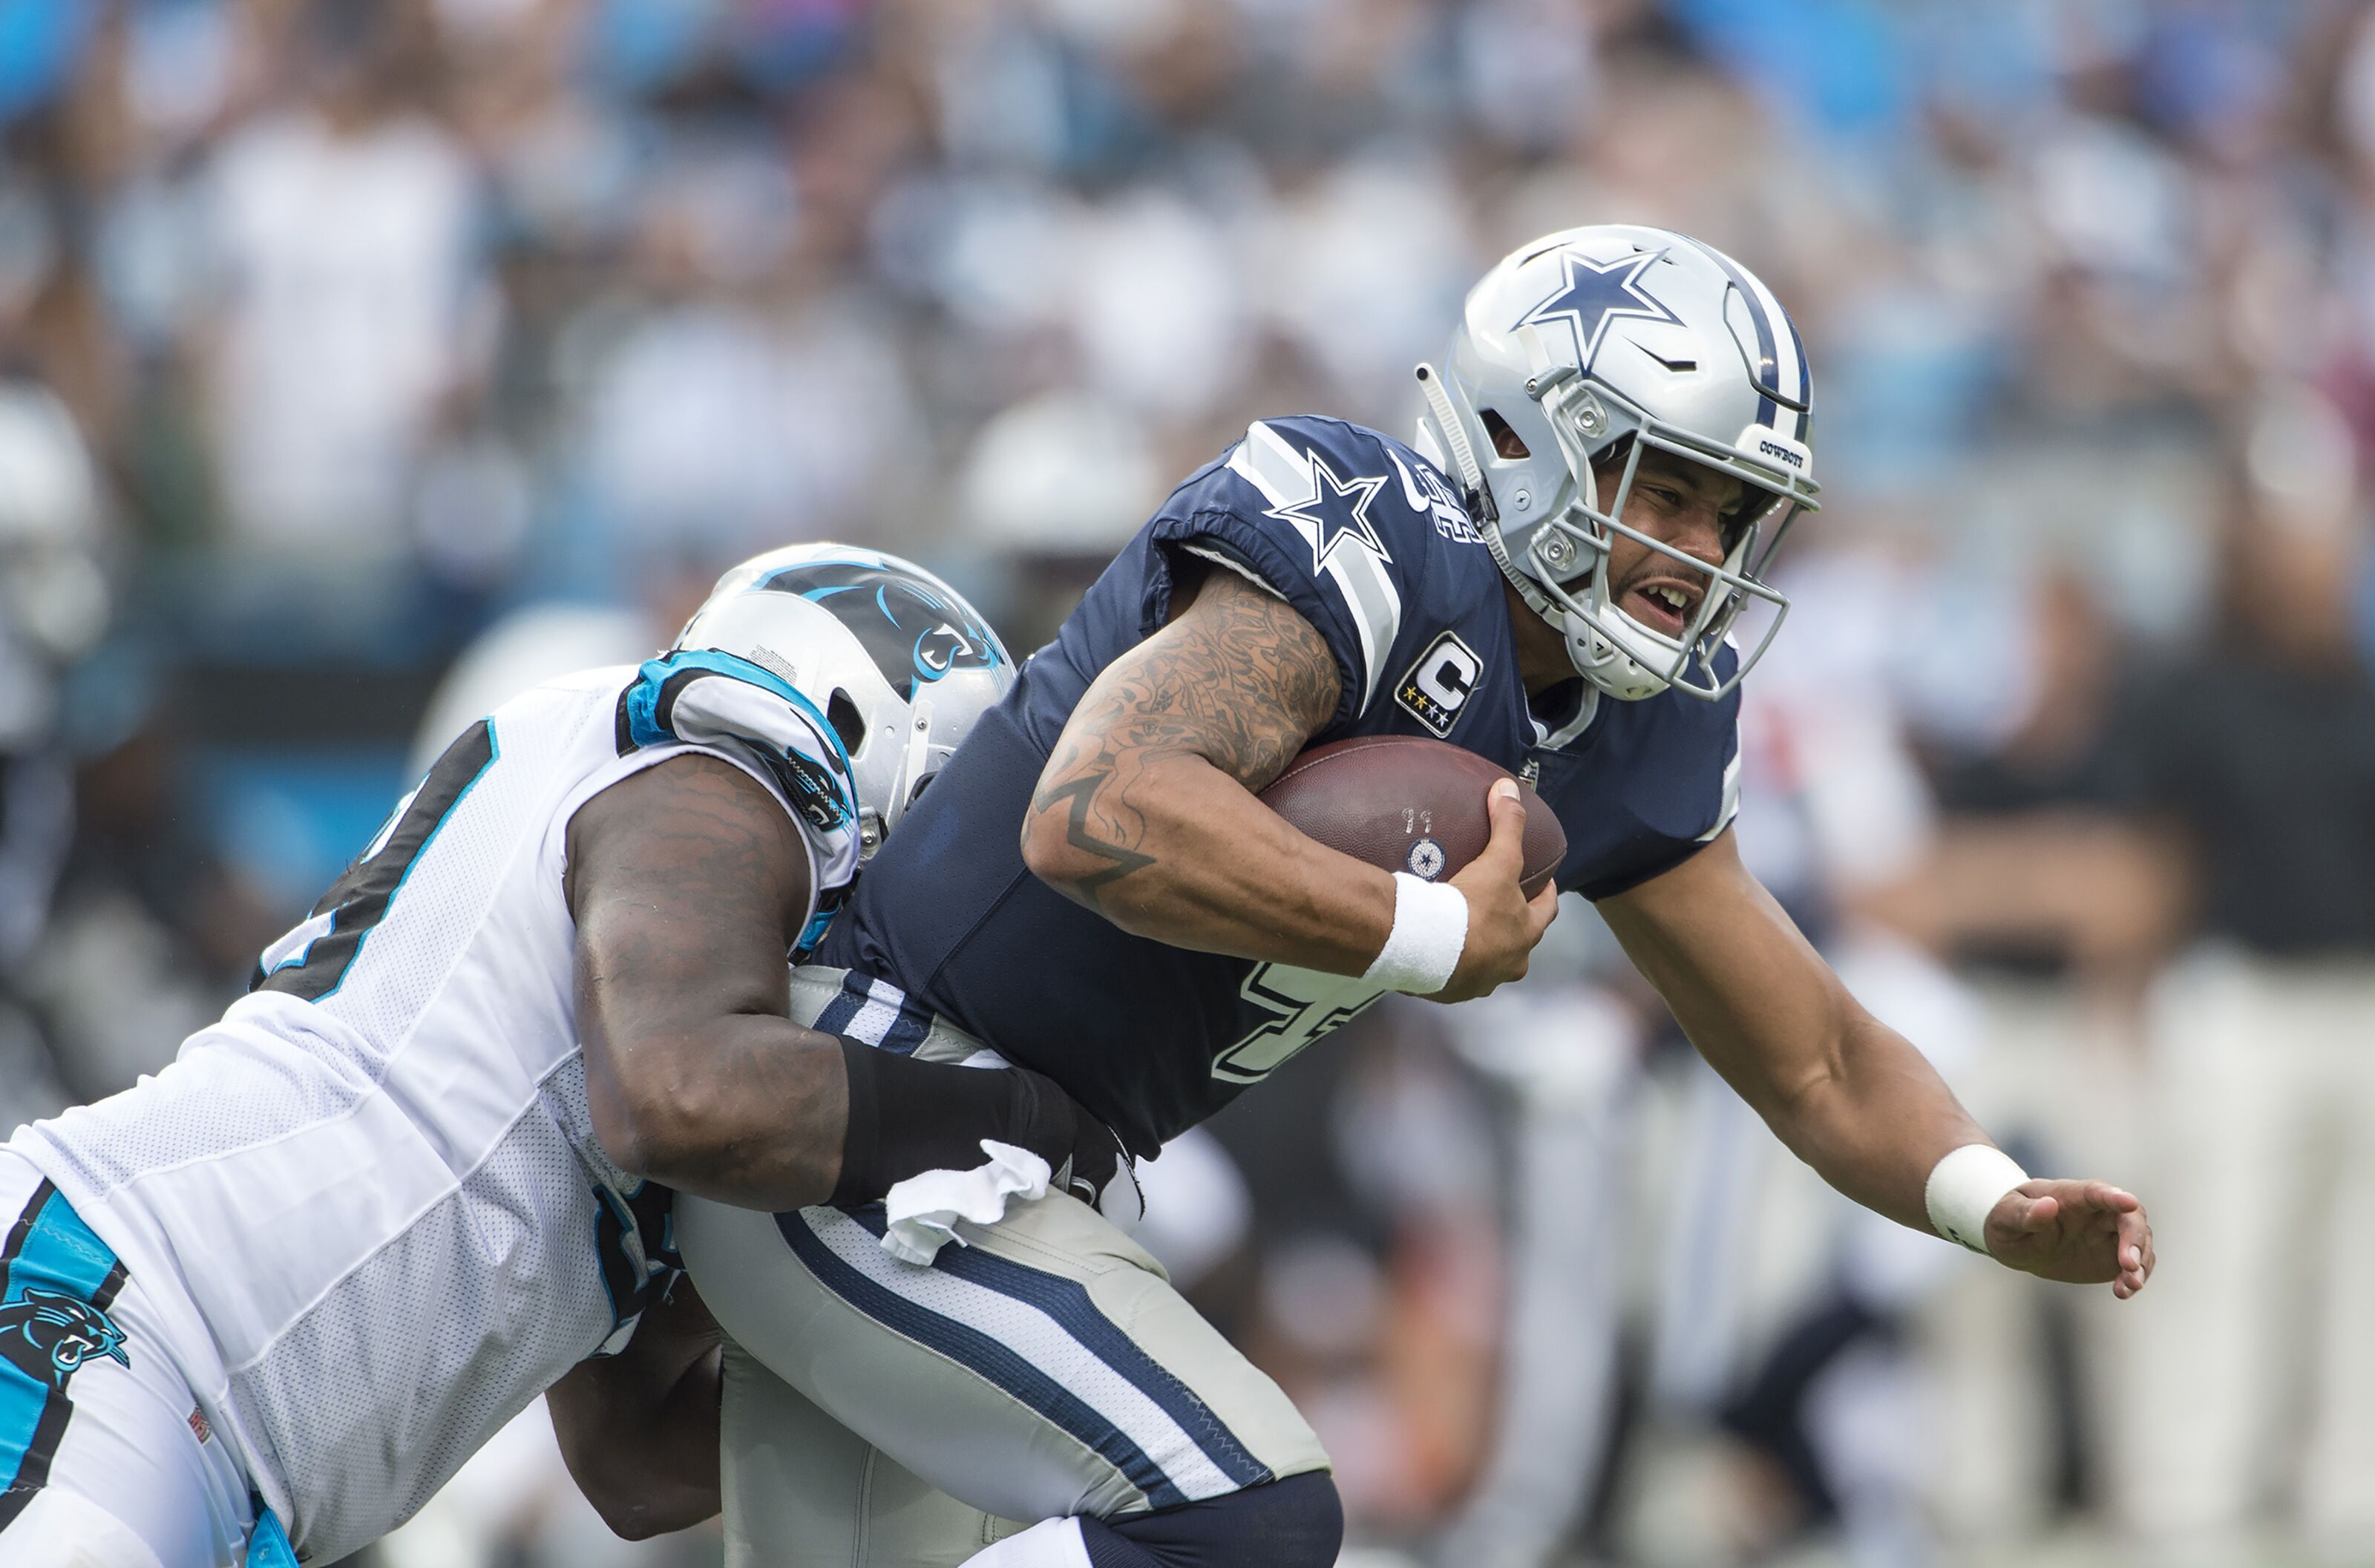 CHARLOTTE, NC - SEPTEMBER 09: Quarterback Dak Prescott #4 of the Dallas Cowboys scrambles during a NFL game against the Carolina Panthers at Bank of America Stadium on September 9, 2018 in Charlotte, North Carolina. (Photo by Ronald C. Modra/Sports Imagery/ Getty Images)